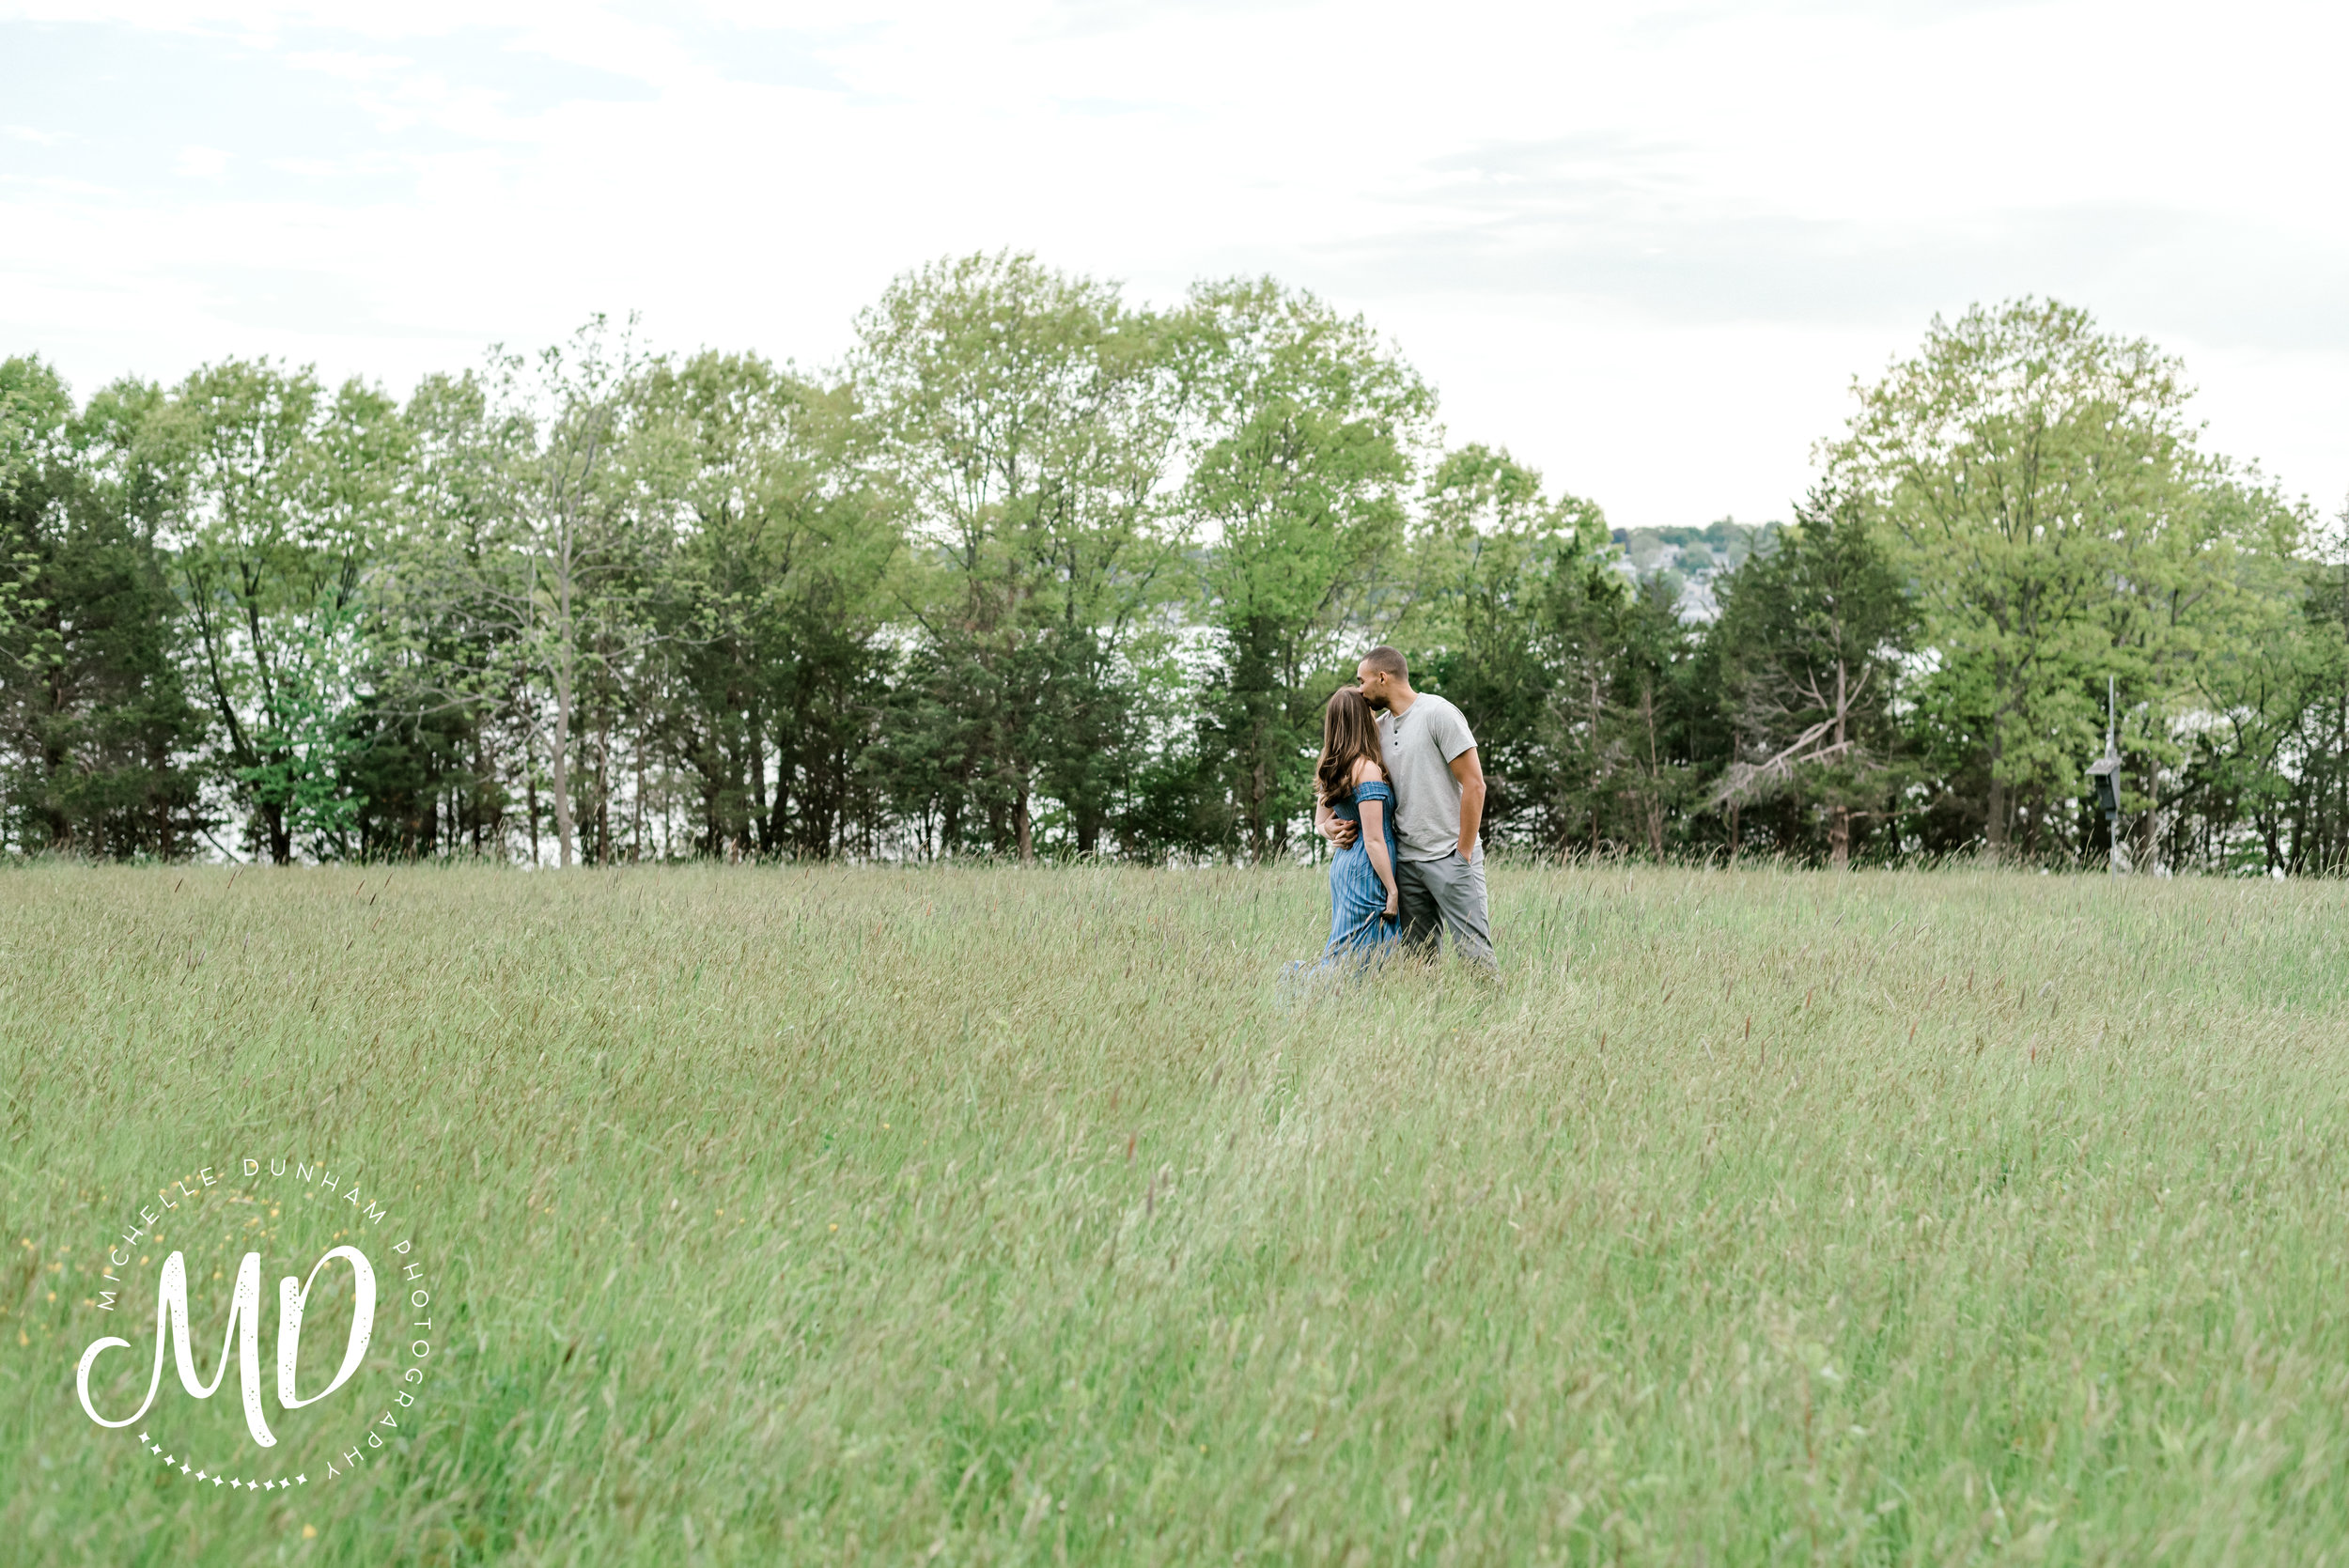 worlds_end_hingham_engagement_boston_cape_cod_wedding_photographer_michelle_dunham_photography-34.jpg